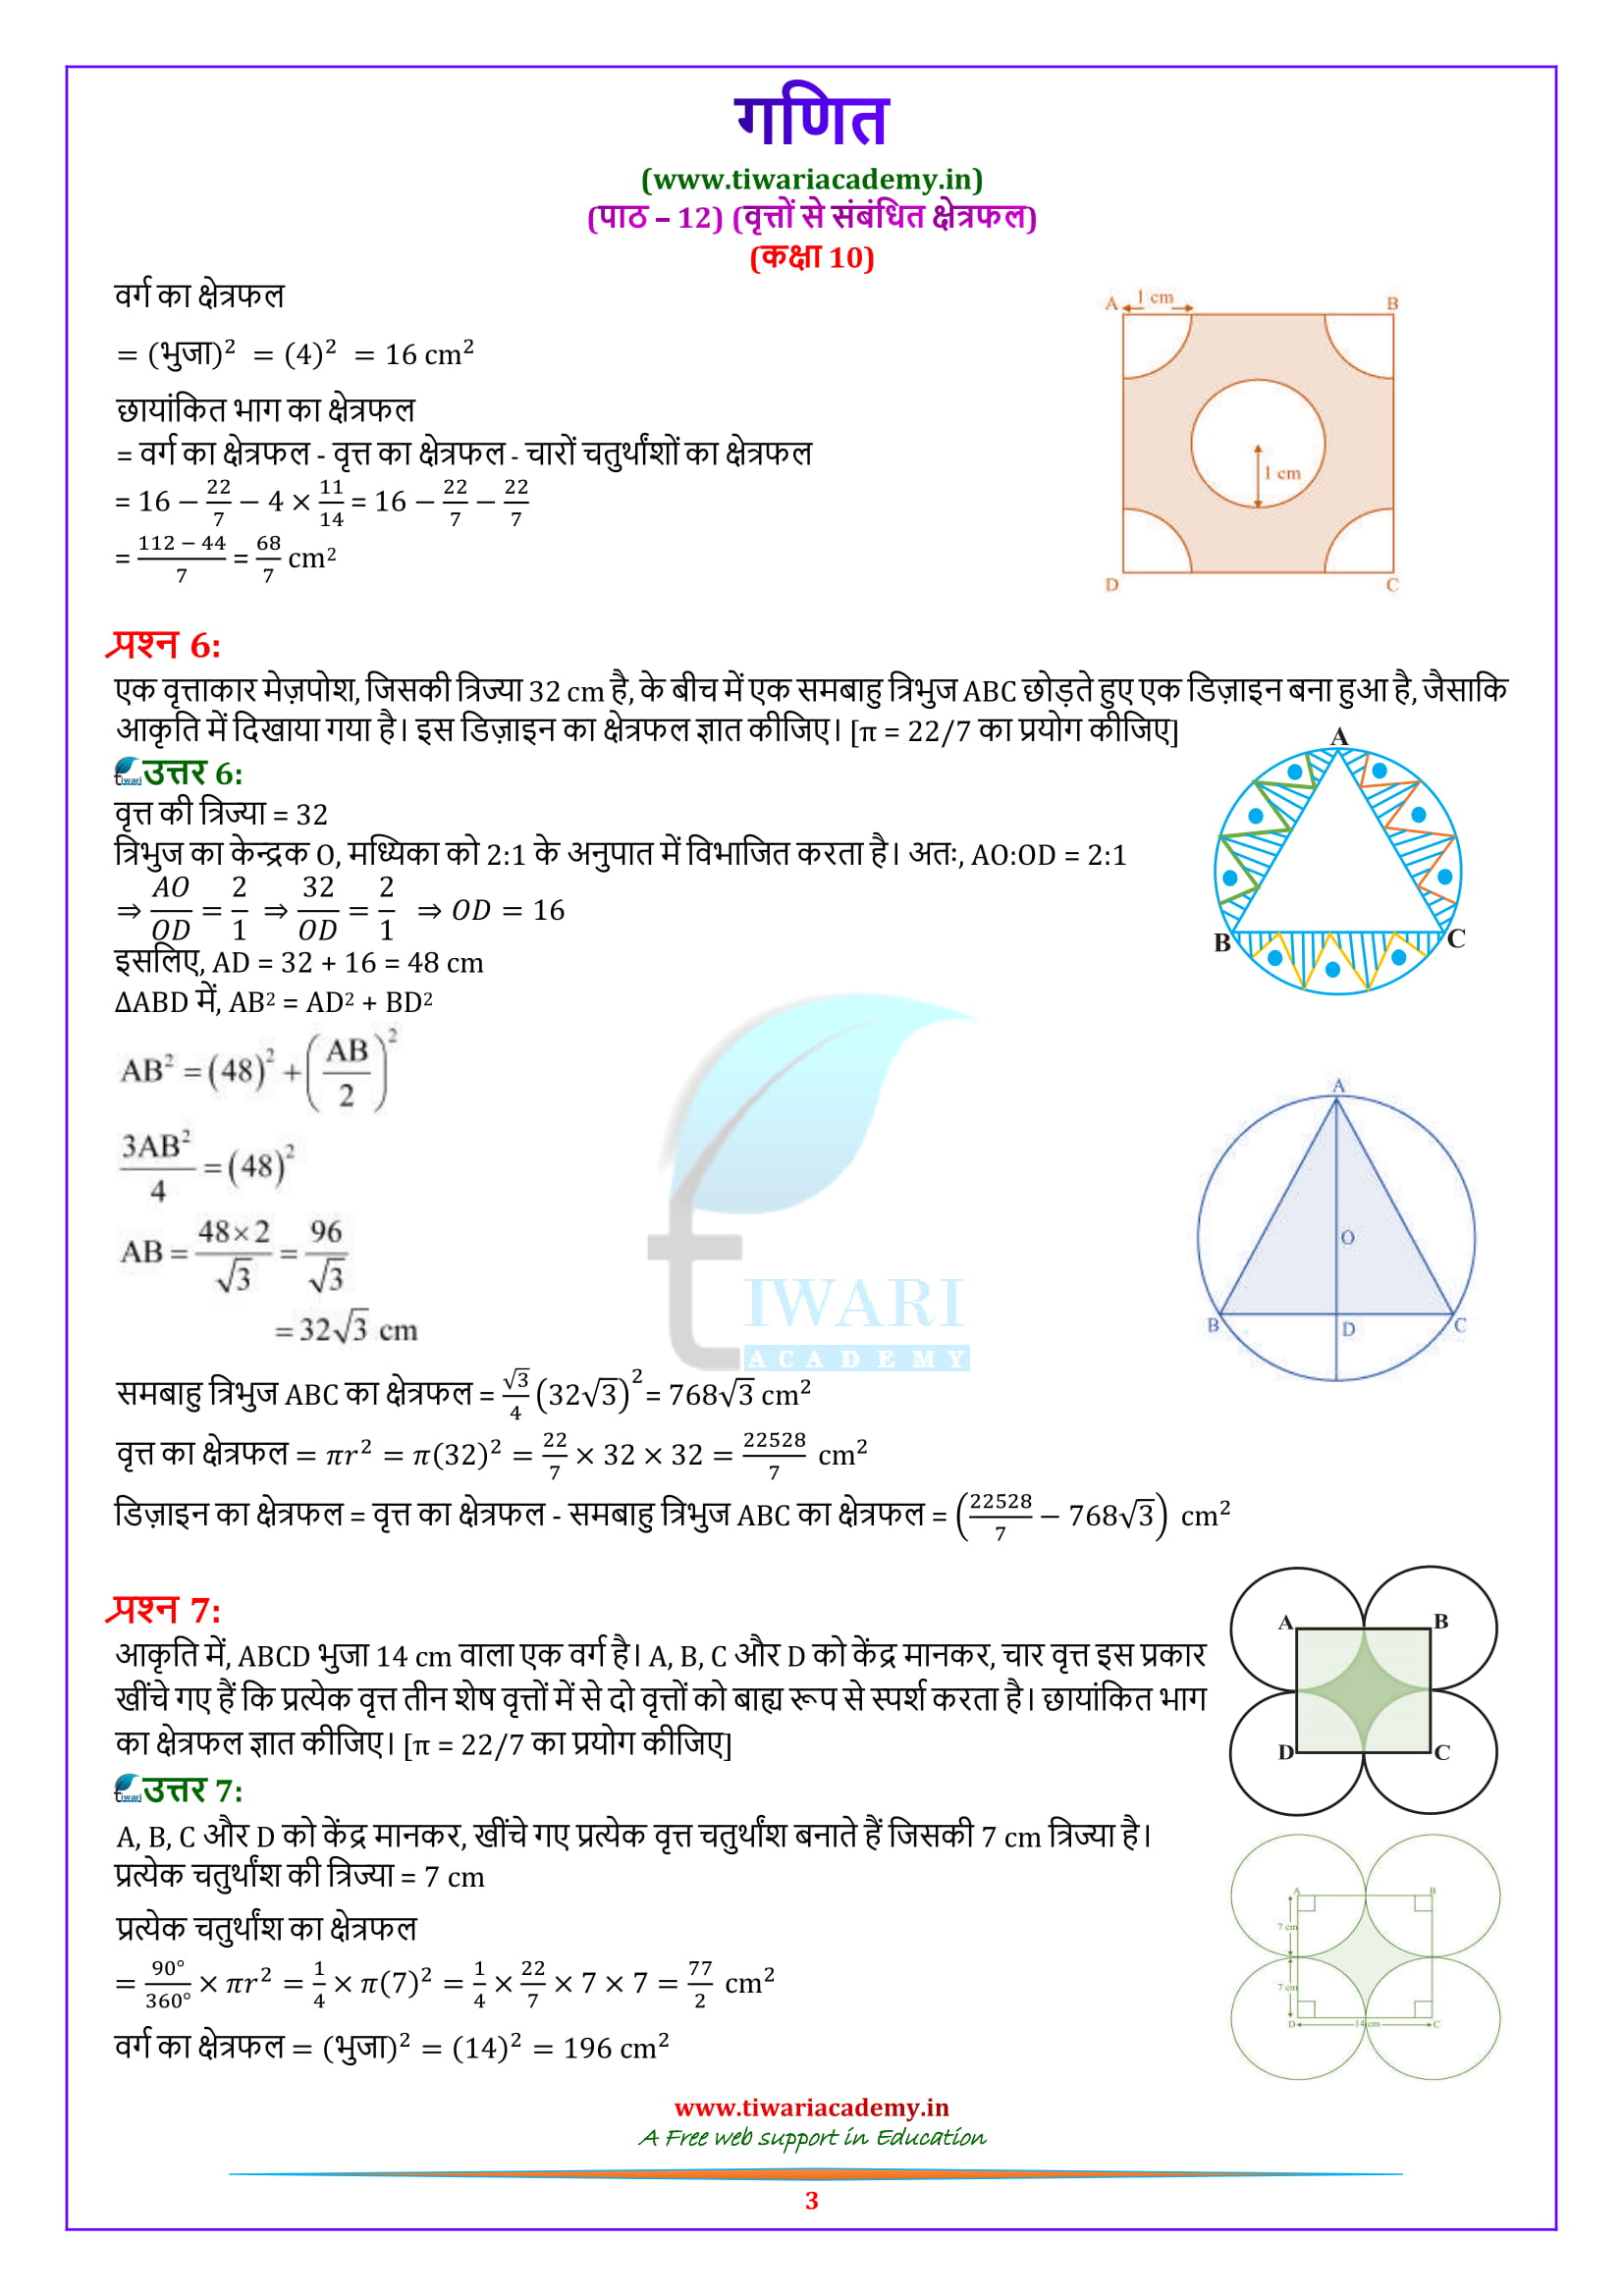 10 Maths Exercise 12.3 solutions in updated form